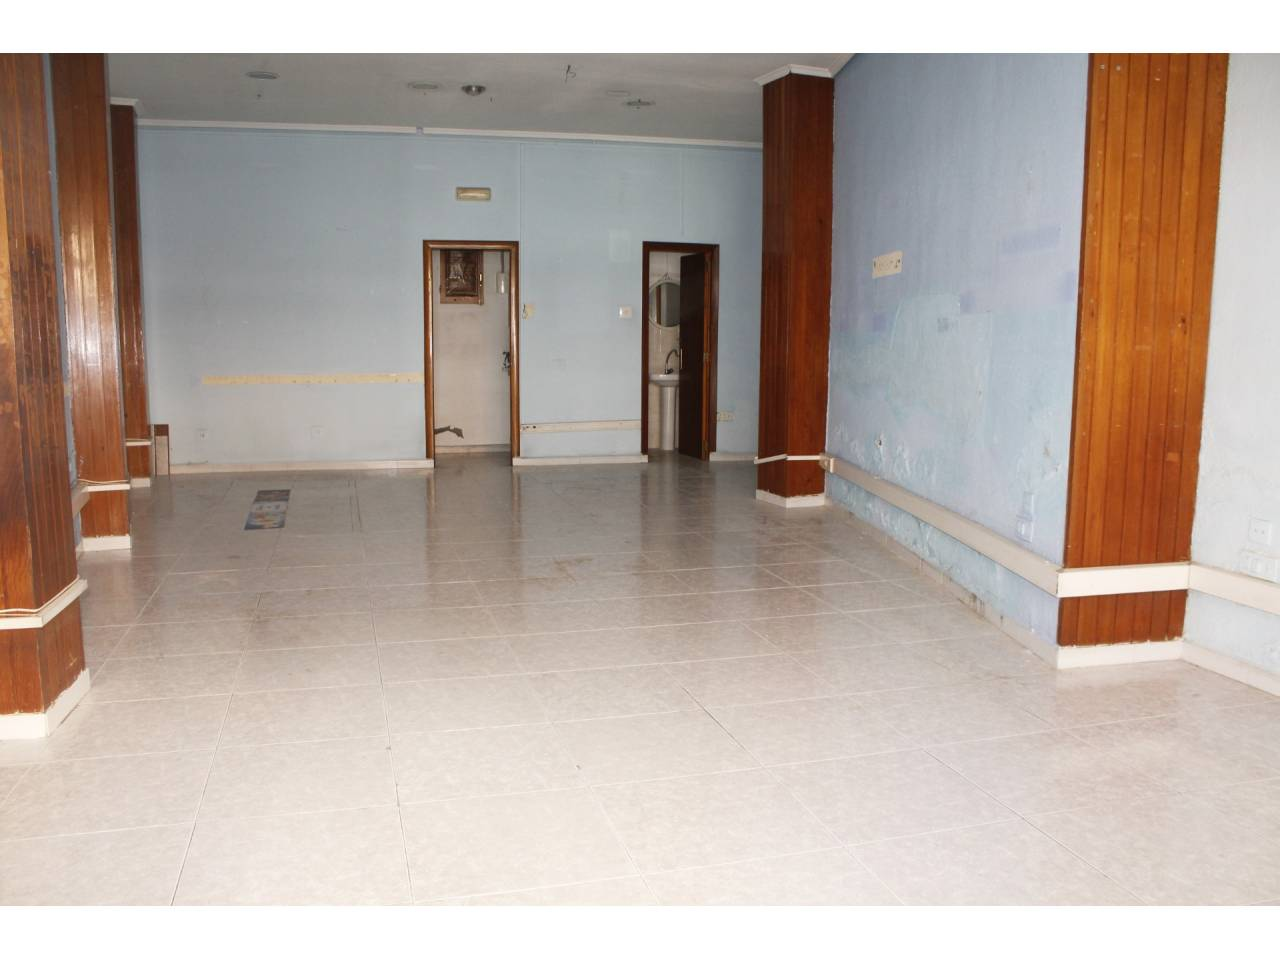 Rent Business premise  Calle major. Superf. 65 m²,  1 aseo, accesibilidad planta baja, divisiones, a